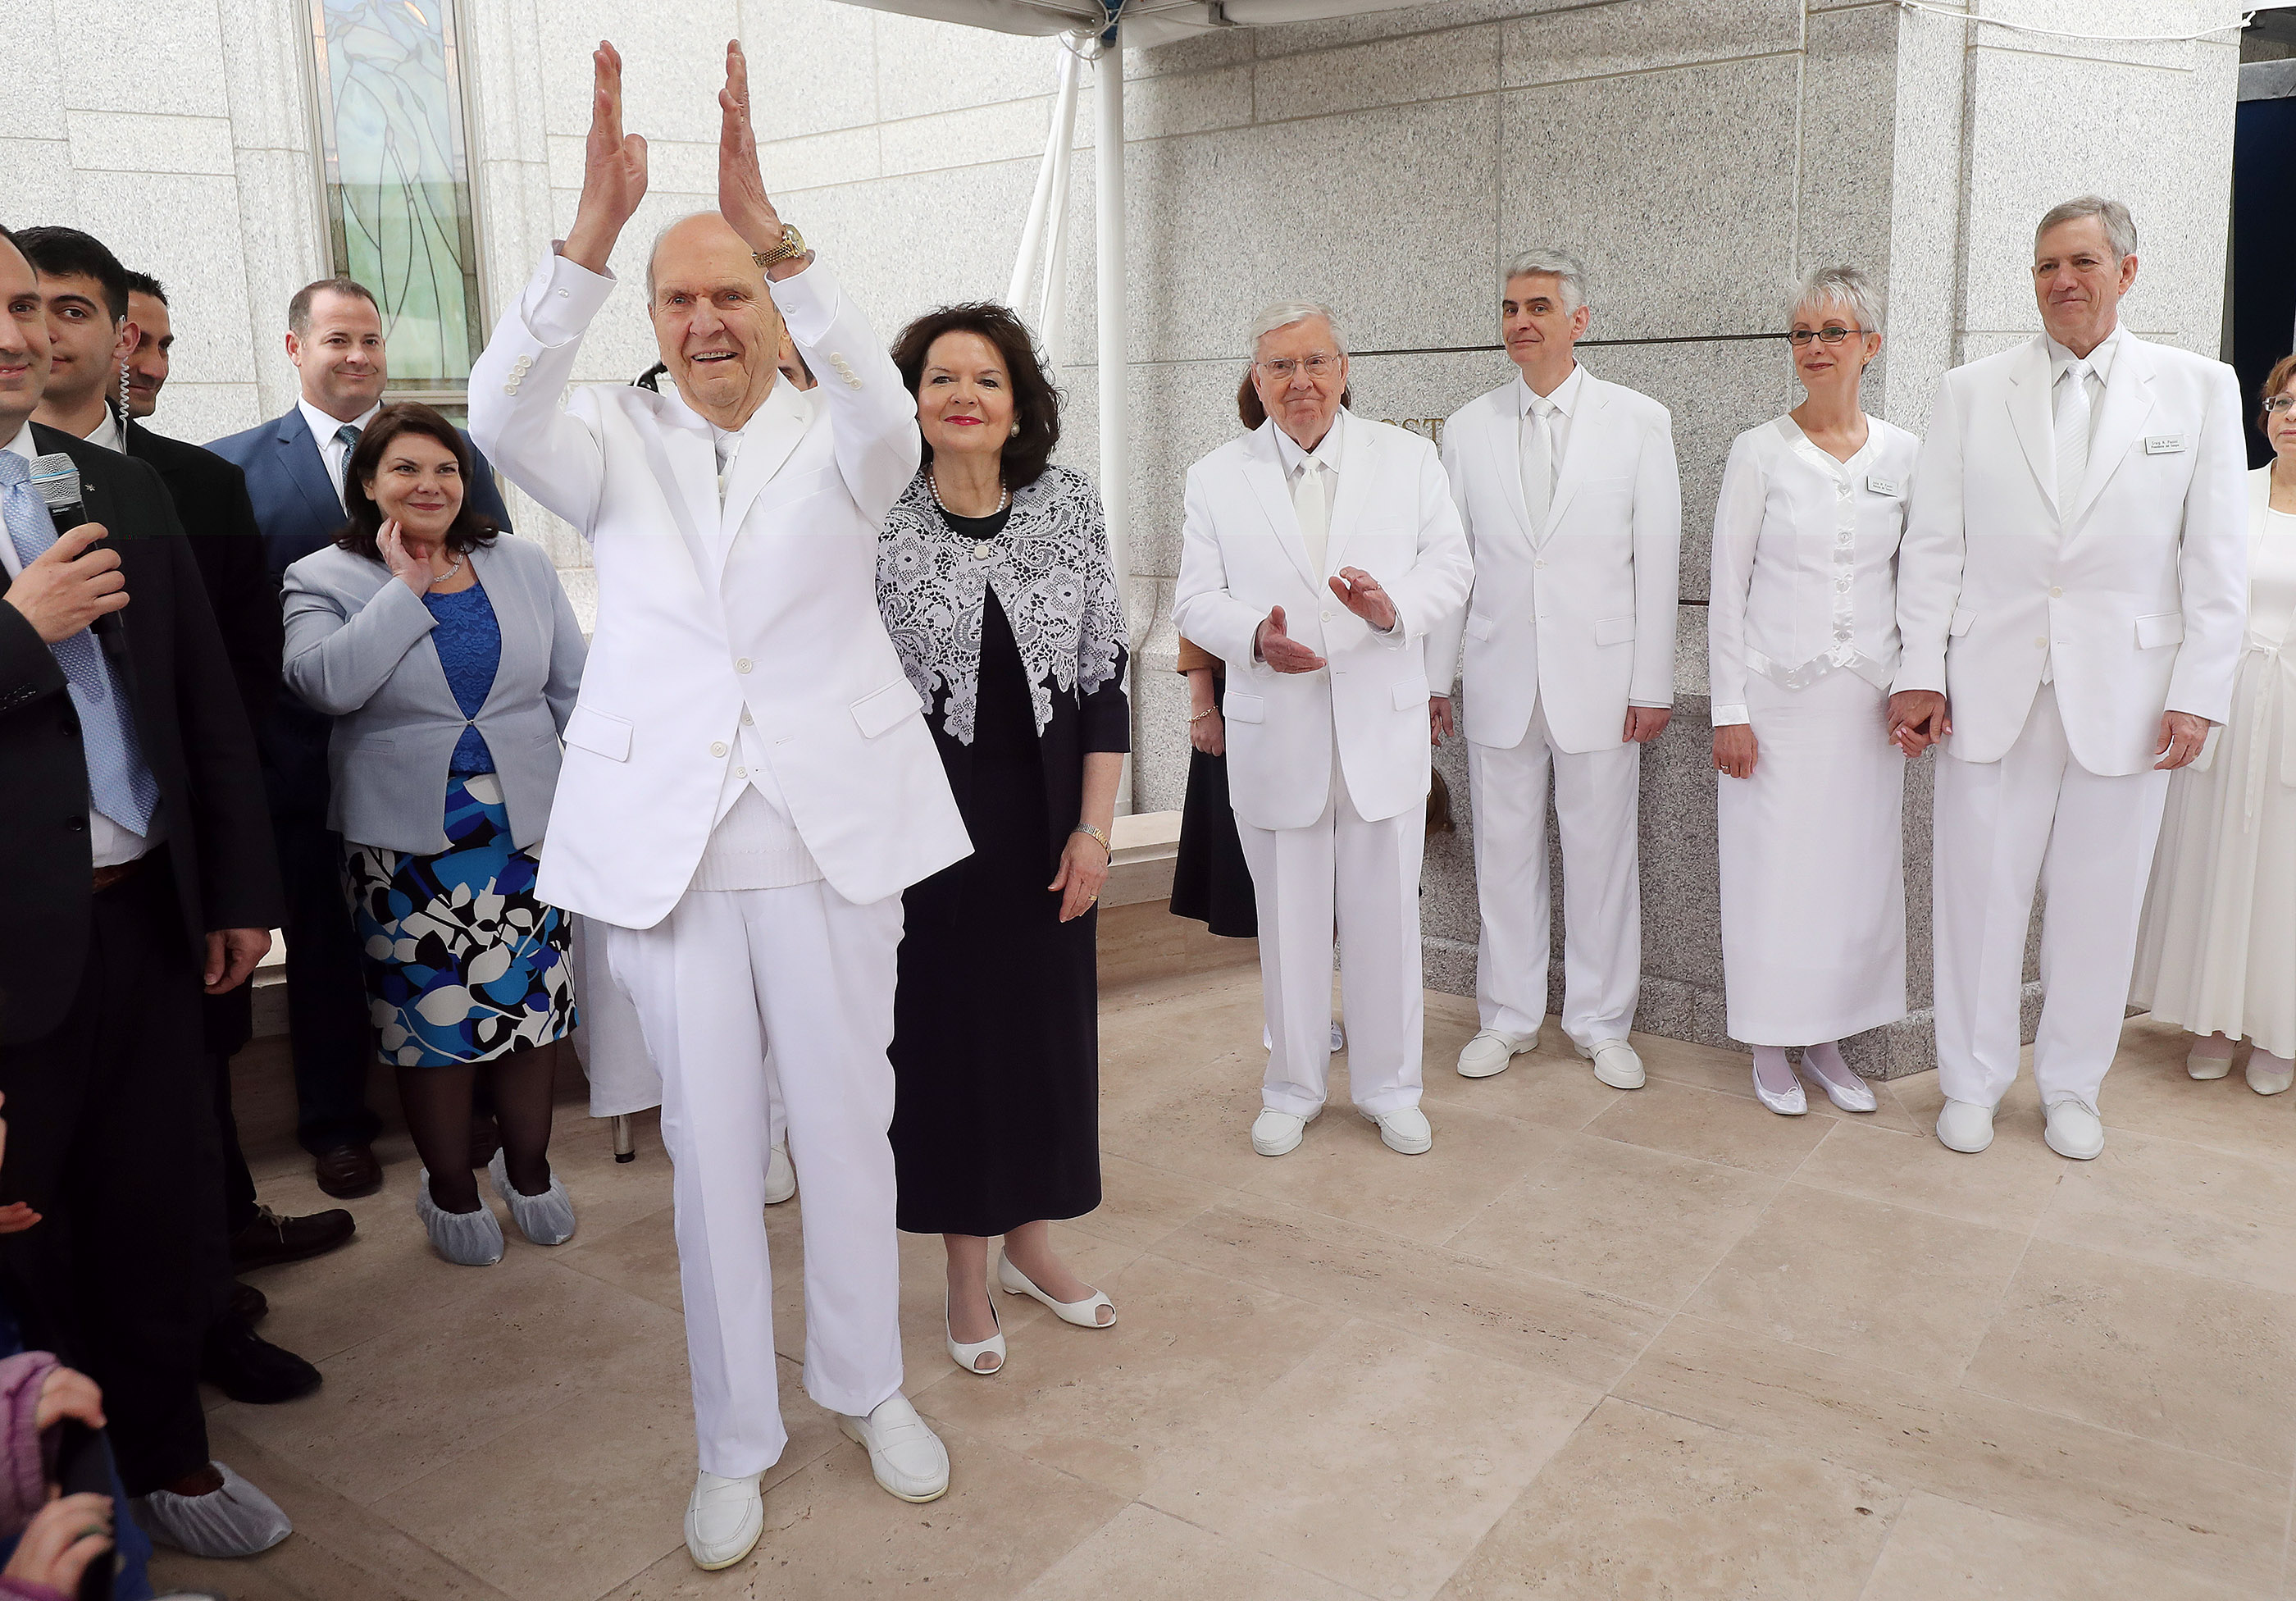 President Russell M. Nelson of The Church of Jesus Christ of Latter-day Saints claps during the cornerstone ceremony for the dedication of the Rome Italy Temple of The Church of Jesus Christ of Latter-day Saints in Rome, Italy, on Sunday, March 10, 2019.